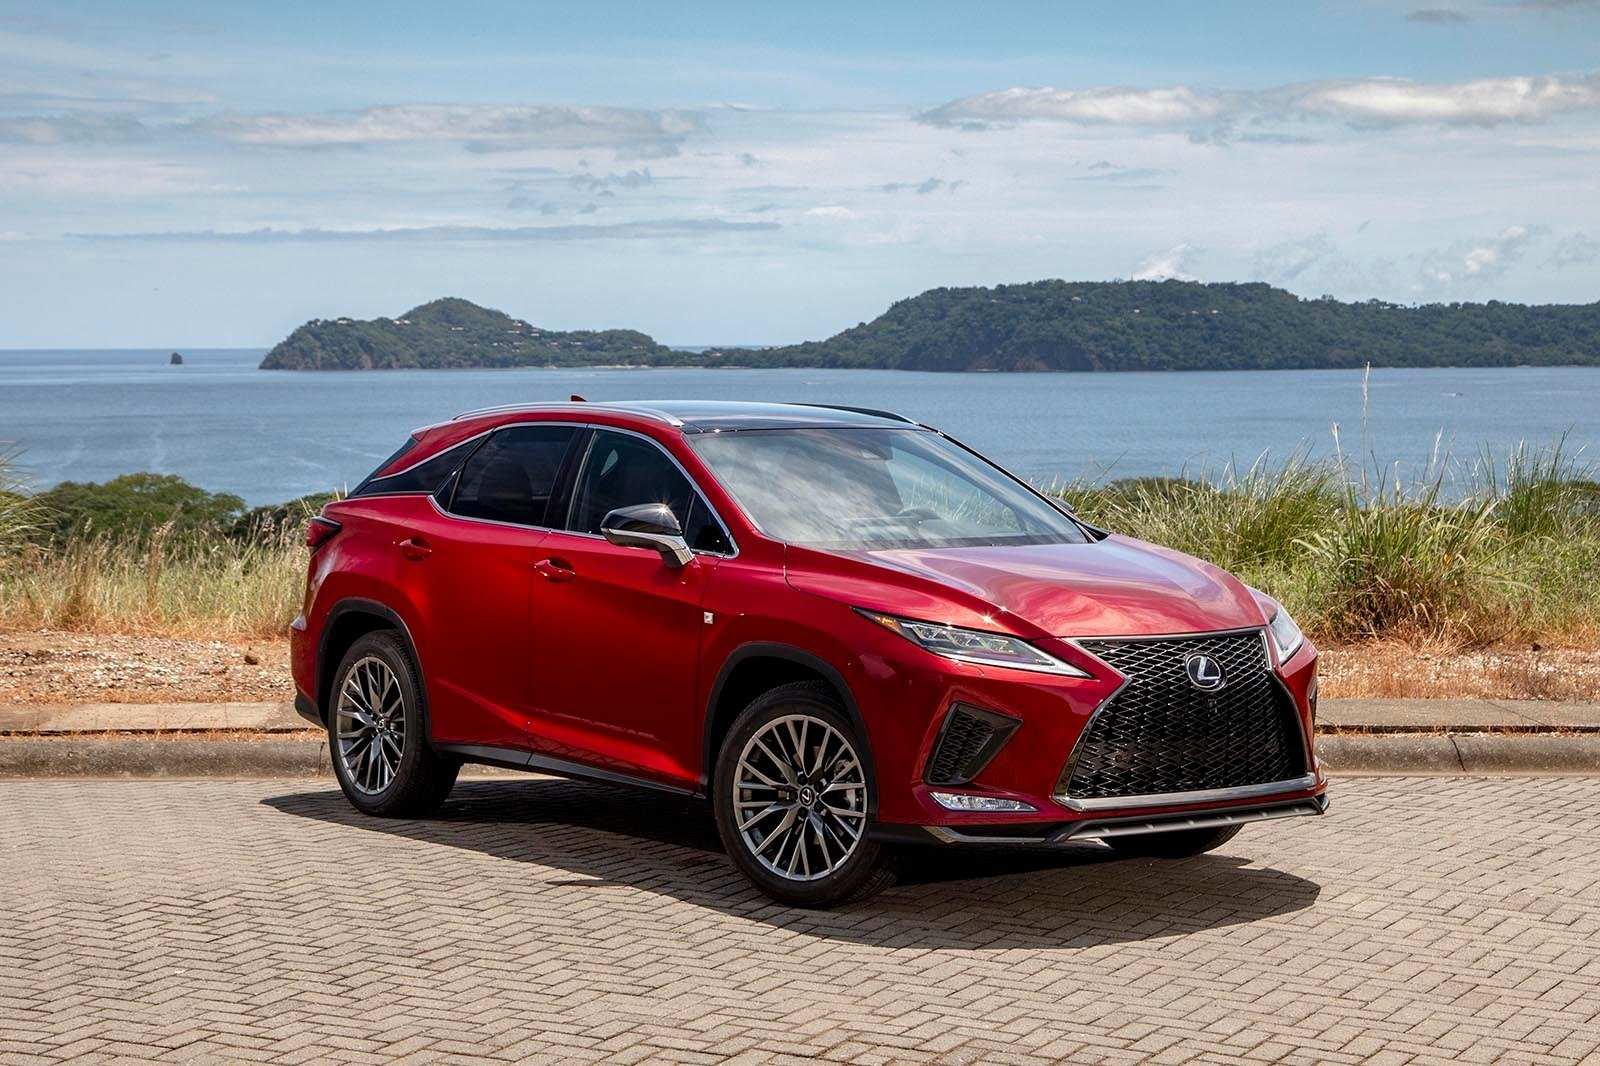 80 Gallery of When Will 2020 Lexus Suv Come Out Pictures by When Will 2020 Lexus Suv Come Out